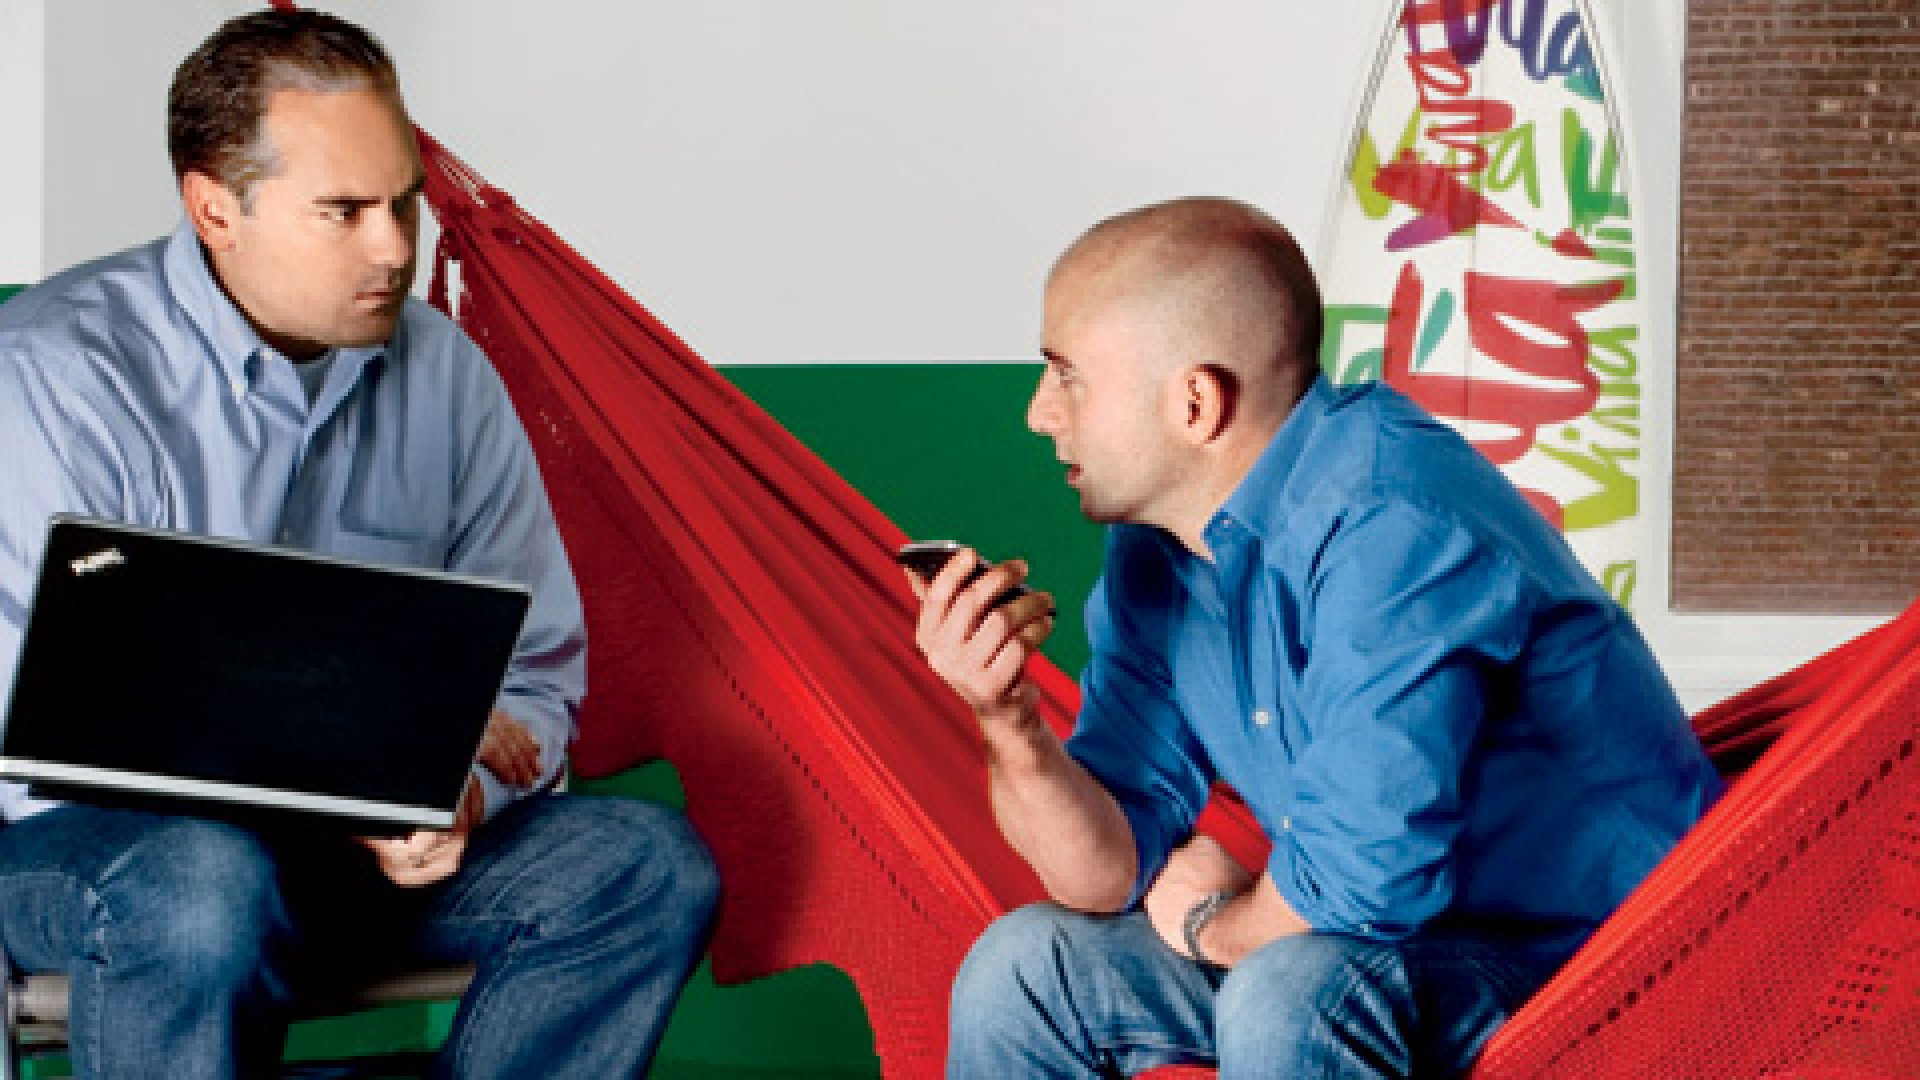 <b>Hanging Tough</b> Michael Kirban (he's the one in the hammock) and Vita Coco's sales director, Tim Dwyer, place a sales call to online grocer FreshDirect.